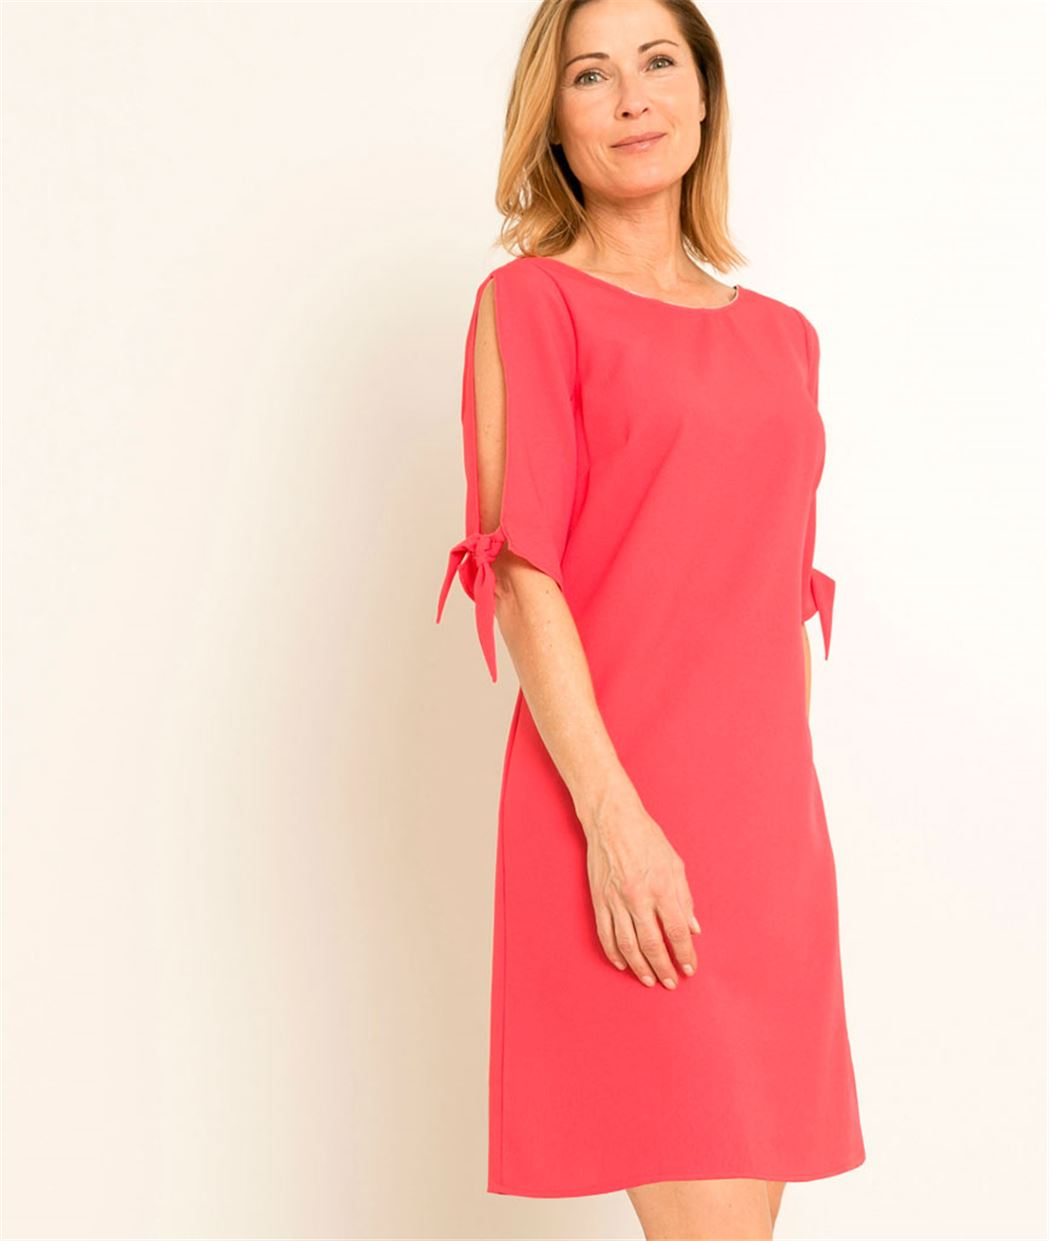 Robe femme unie manches ouvertes ROSE